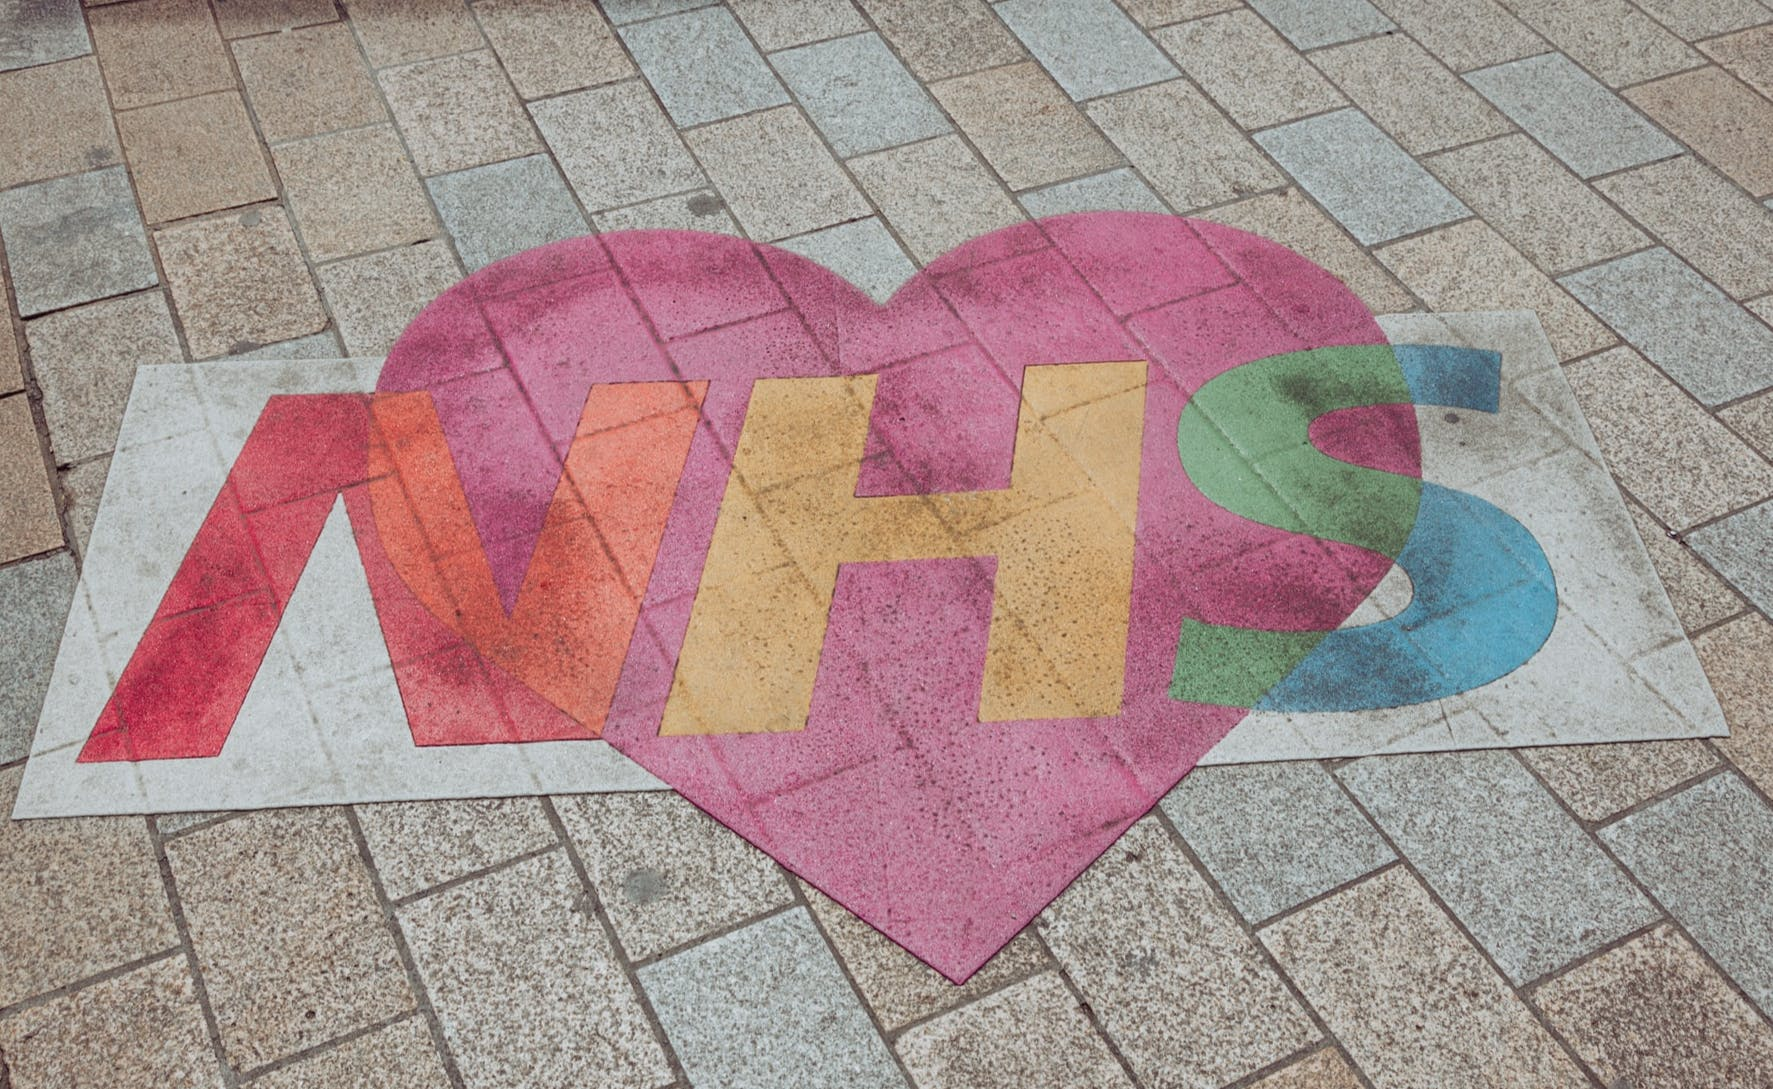 multicolour NHS logo on paved floor with a heart overlaid on top